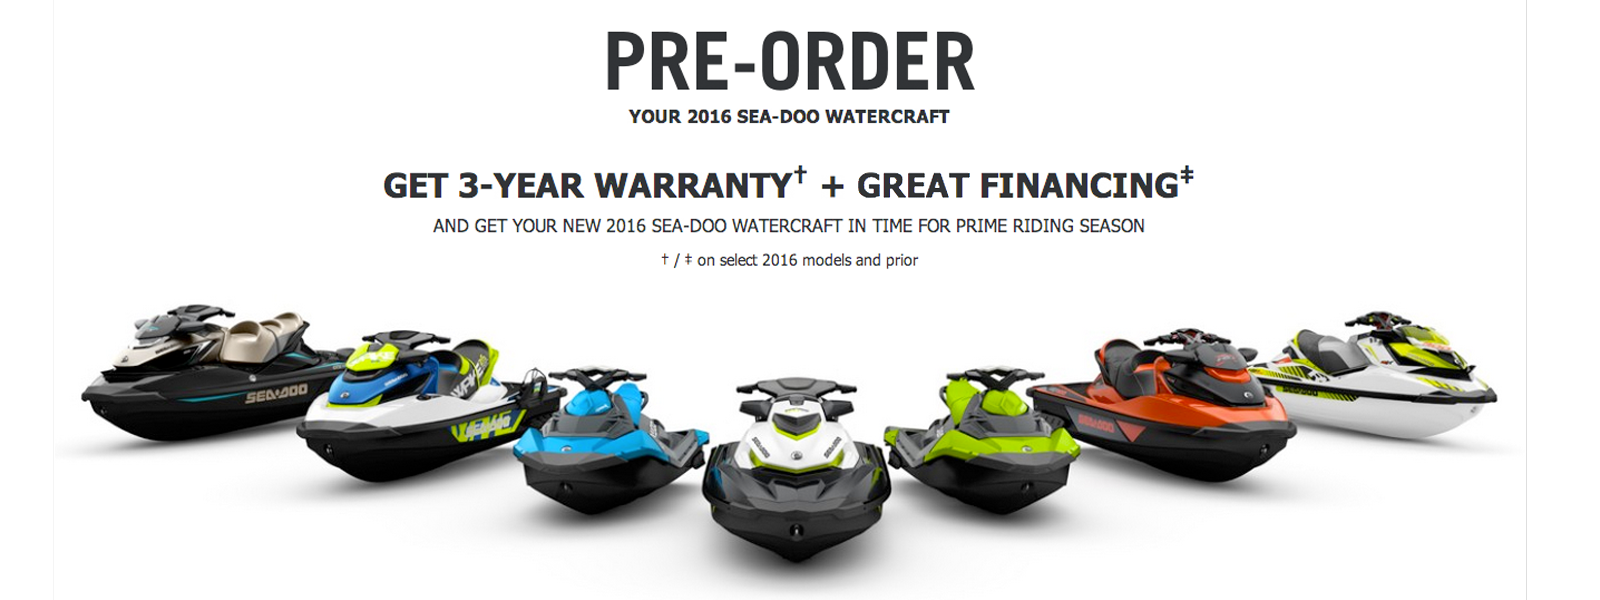 Sea-Doo OEM Promotion - Kissimmee Sea-Doo Personal Watercraft PWC Dealer